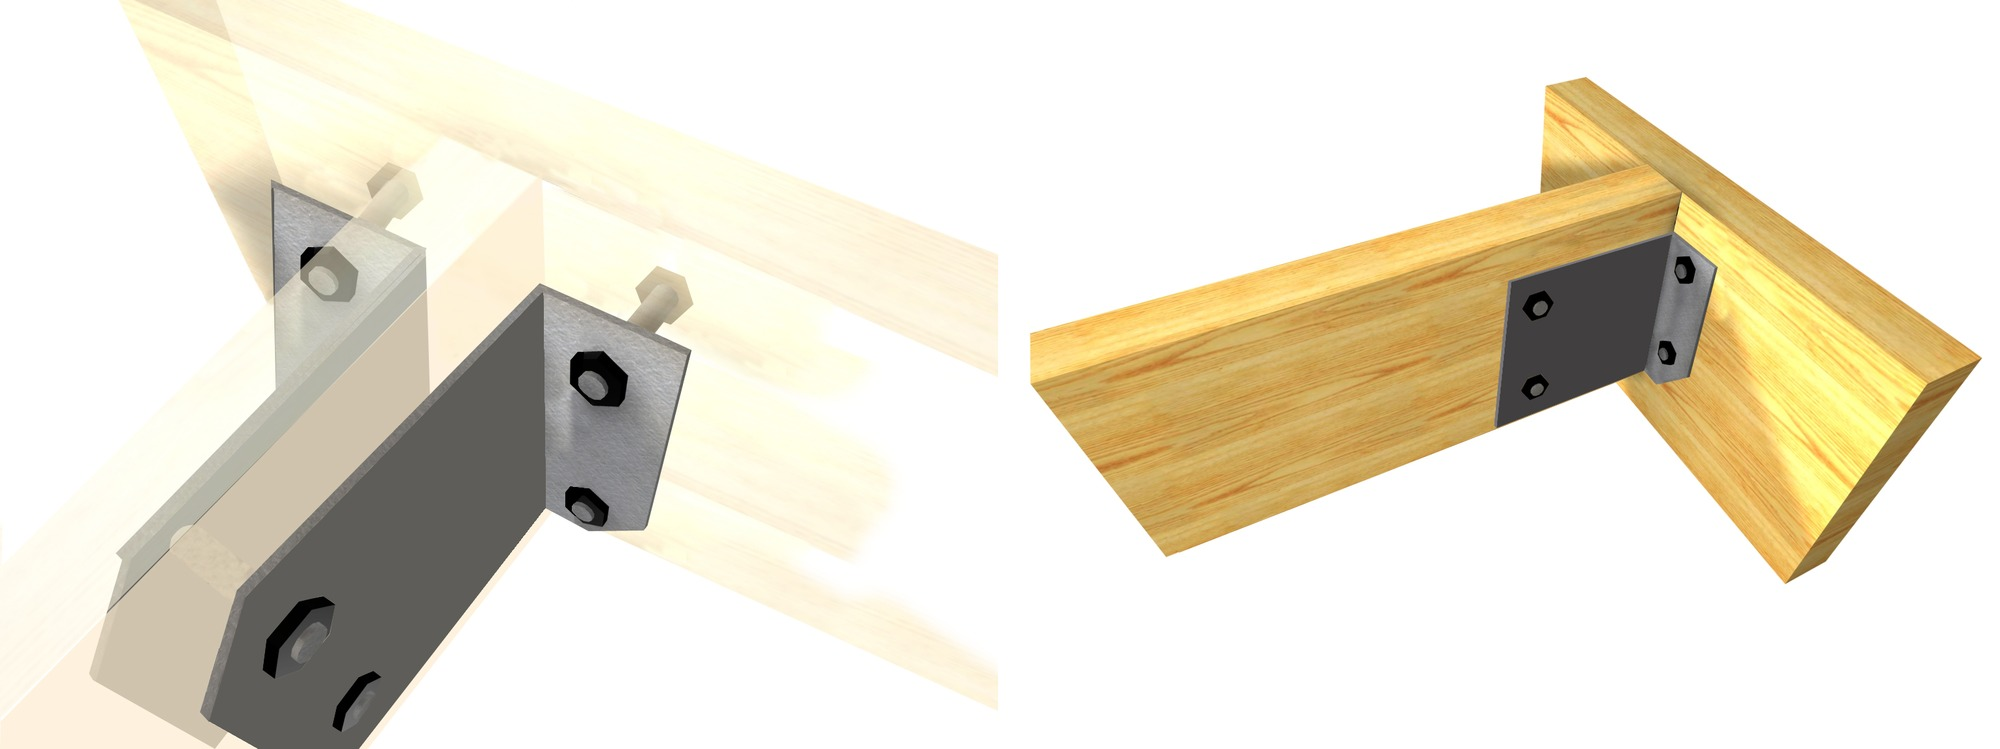 15 Metal Fittings For Connecting Laminated Wooden Structures